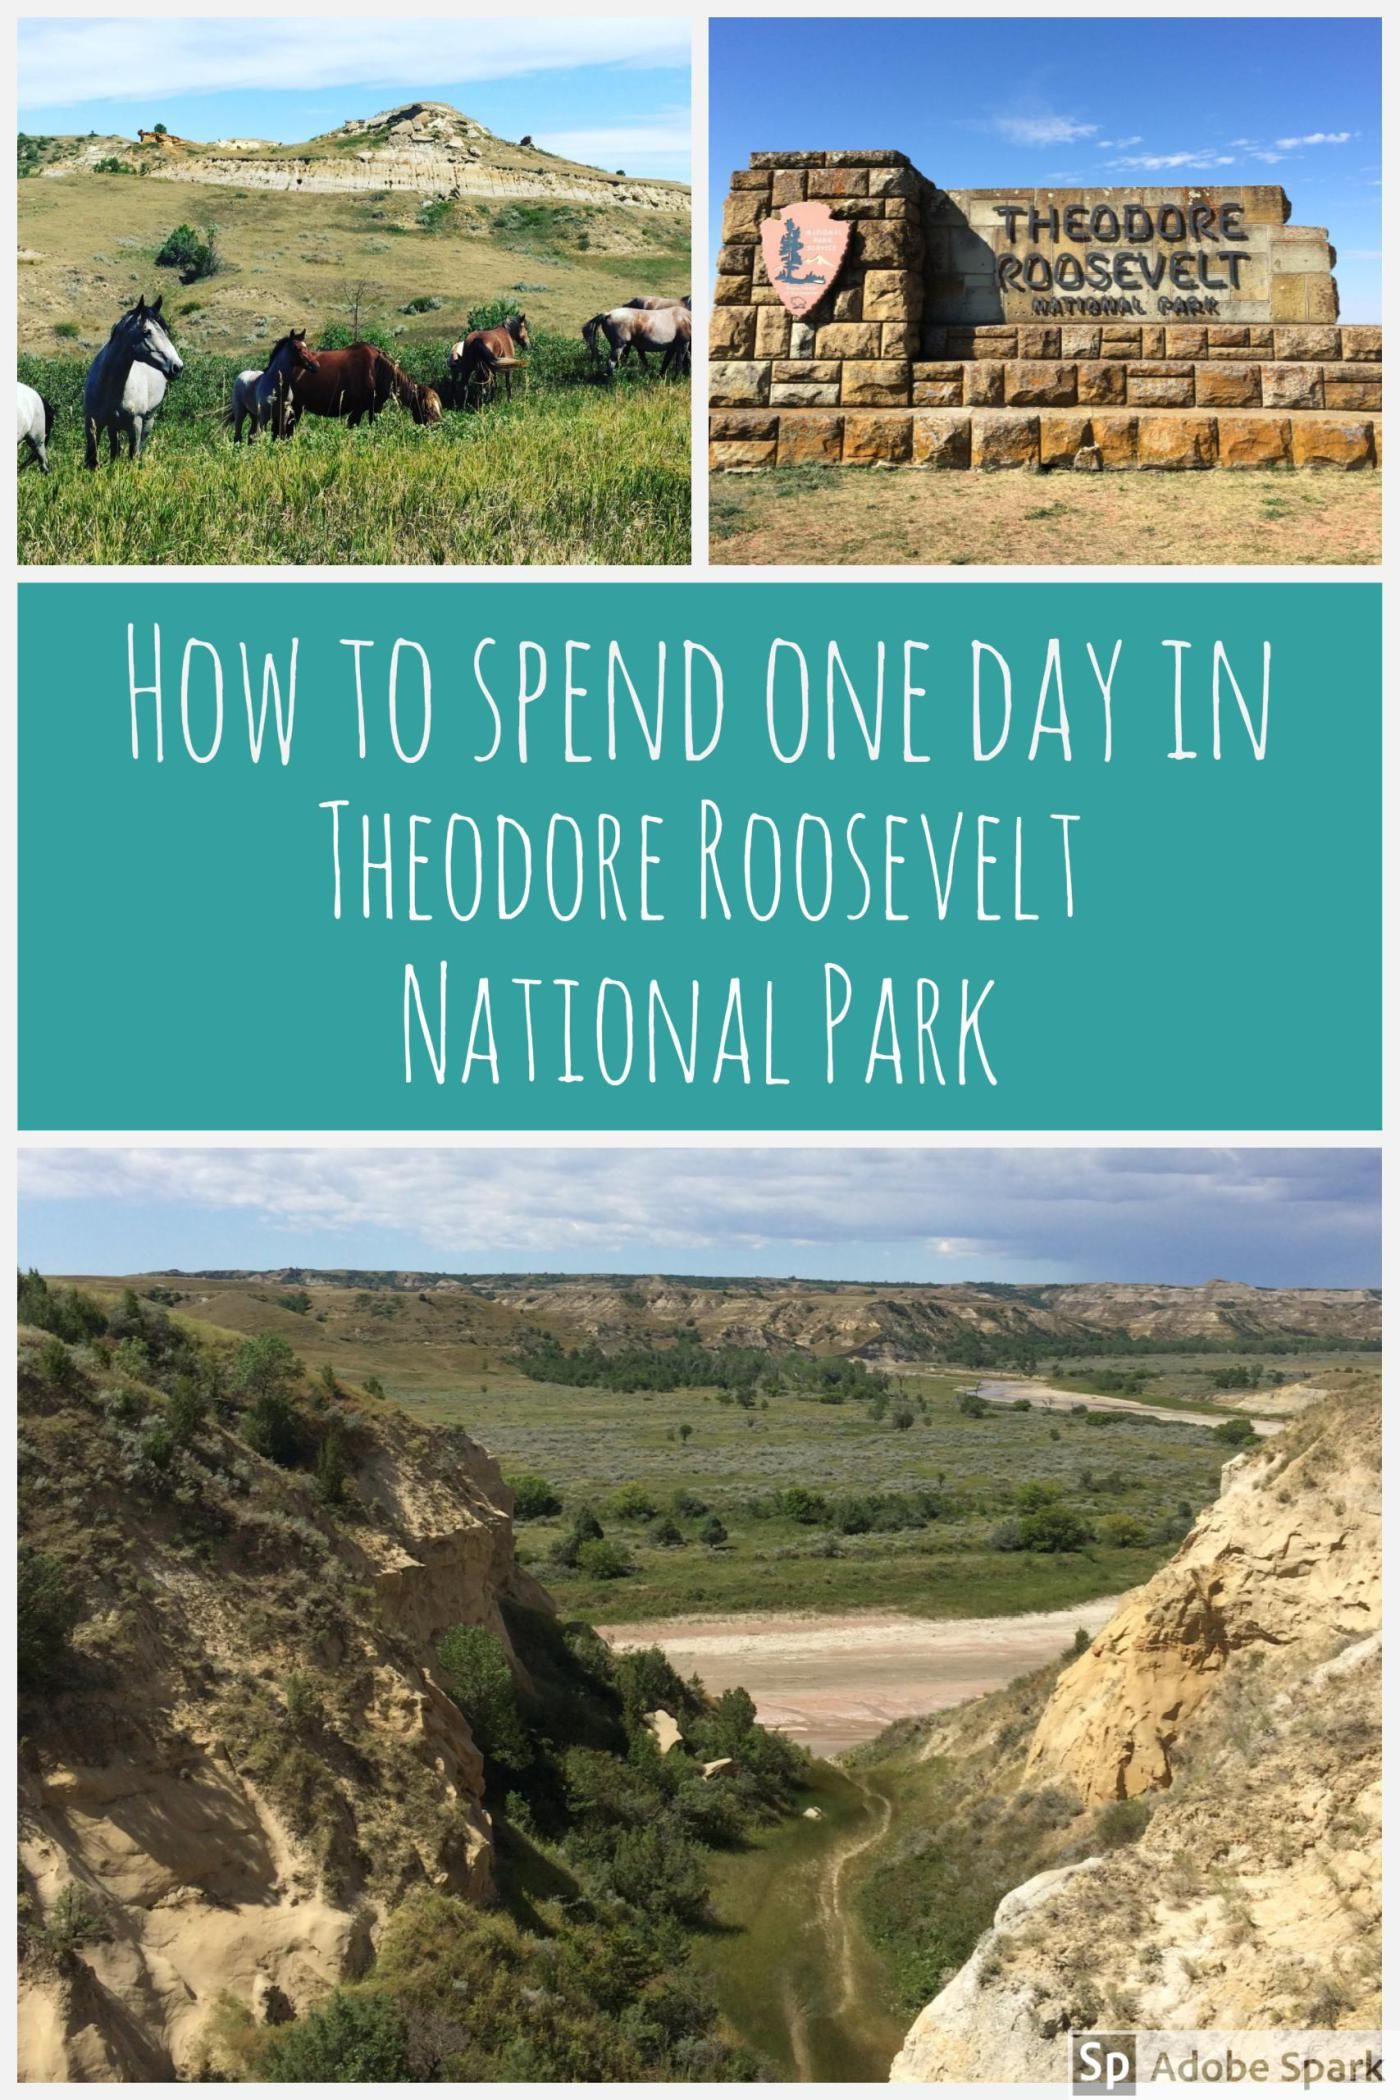 How To Spend 1 Day In Theodore Roosevelt National Park